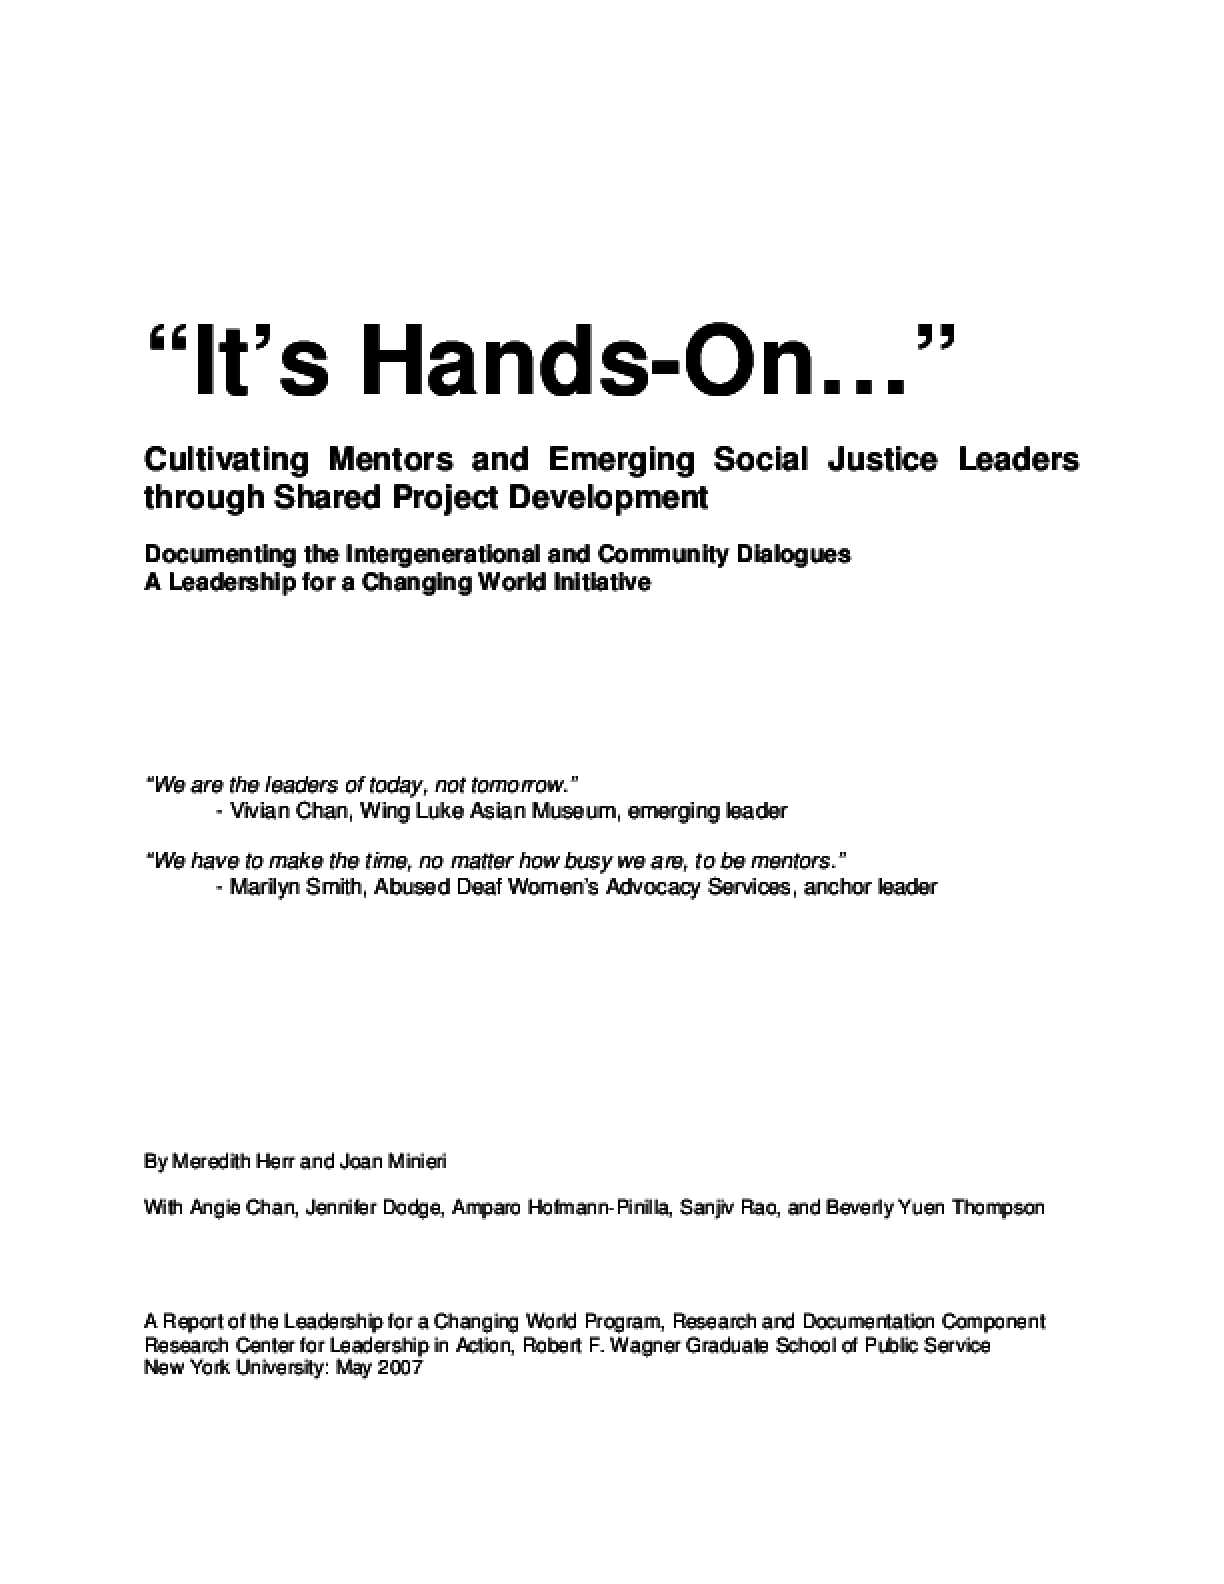 """It's Hands-On..."": Cultivating Mentors and Emerging Social Justice Leaders through Shared Project Development: Documenting the Intergenerational and Community Dialogues: A Leadership for a Changing World Initiative"